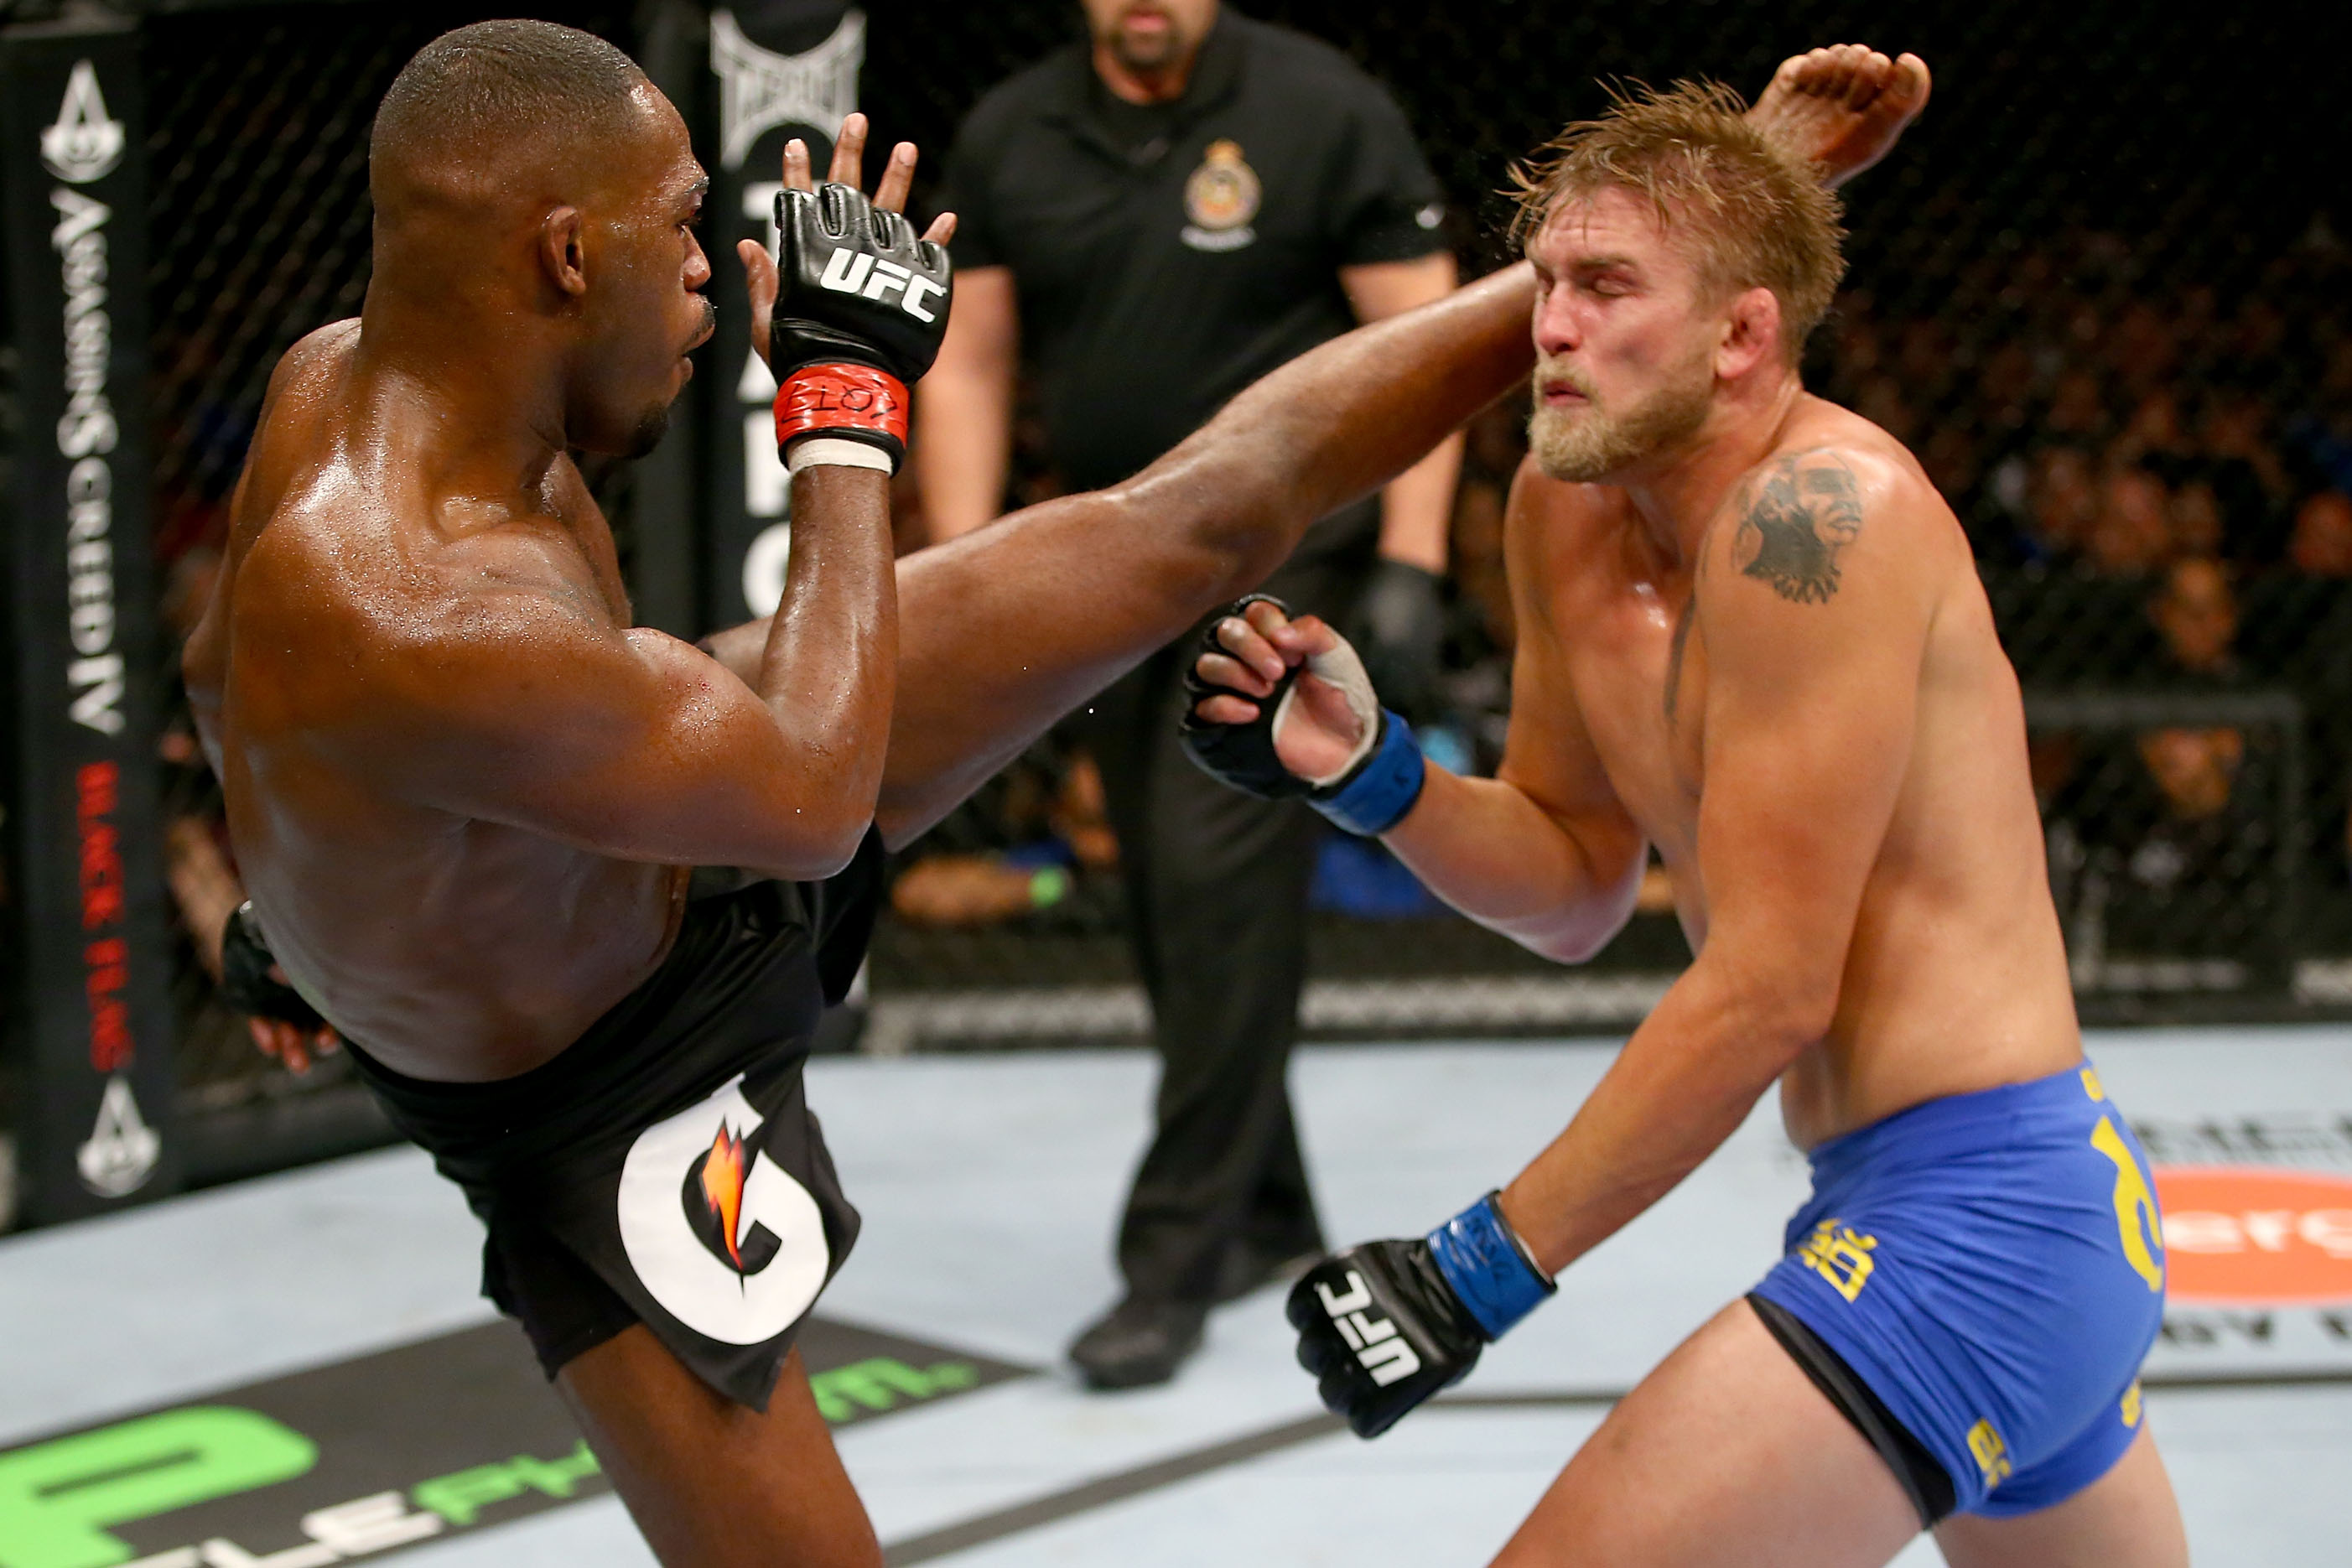 Ufc 179 went down on october 25th, 2014, in brazil, and was headlined by the blockbuster